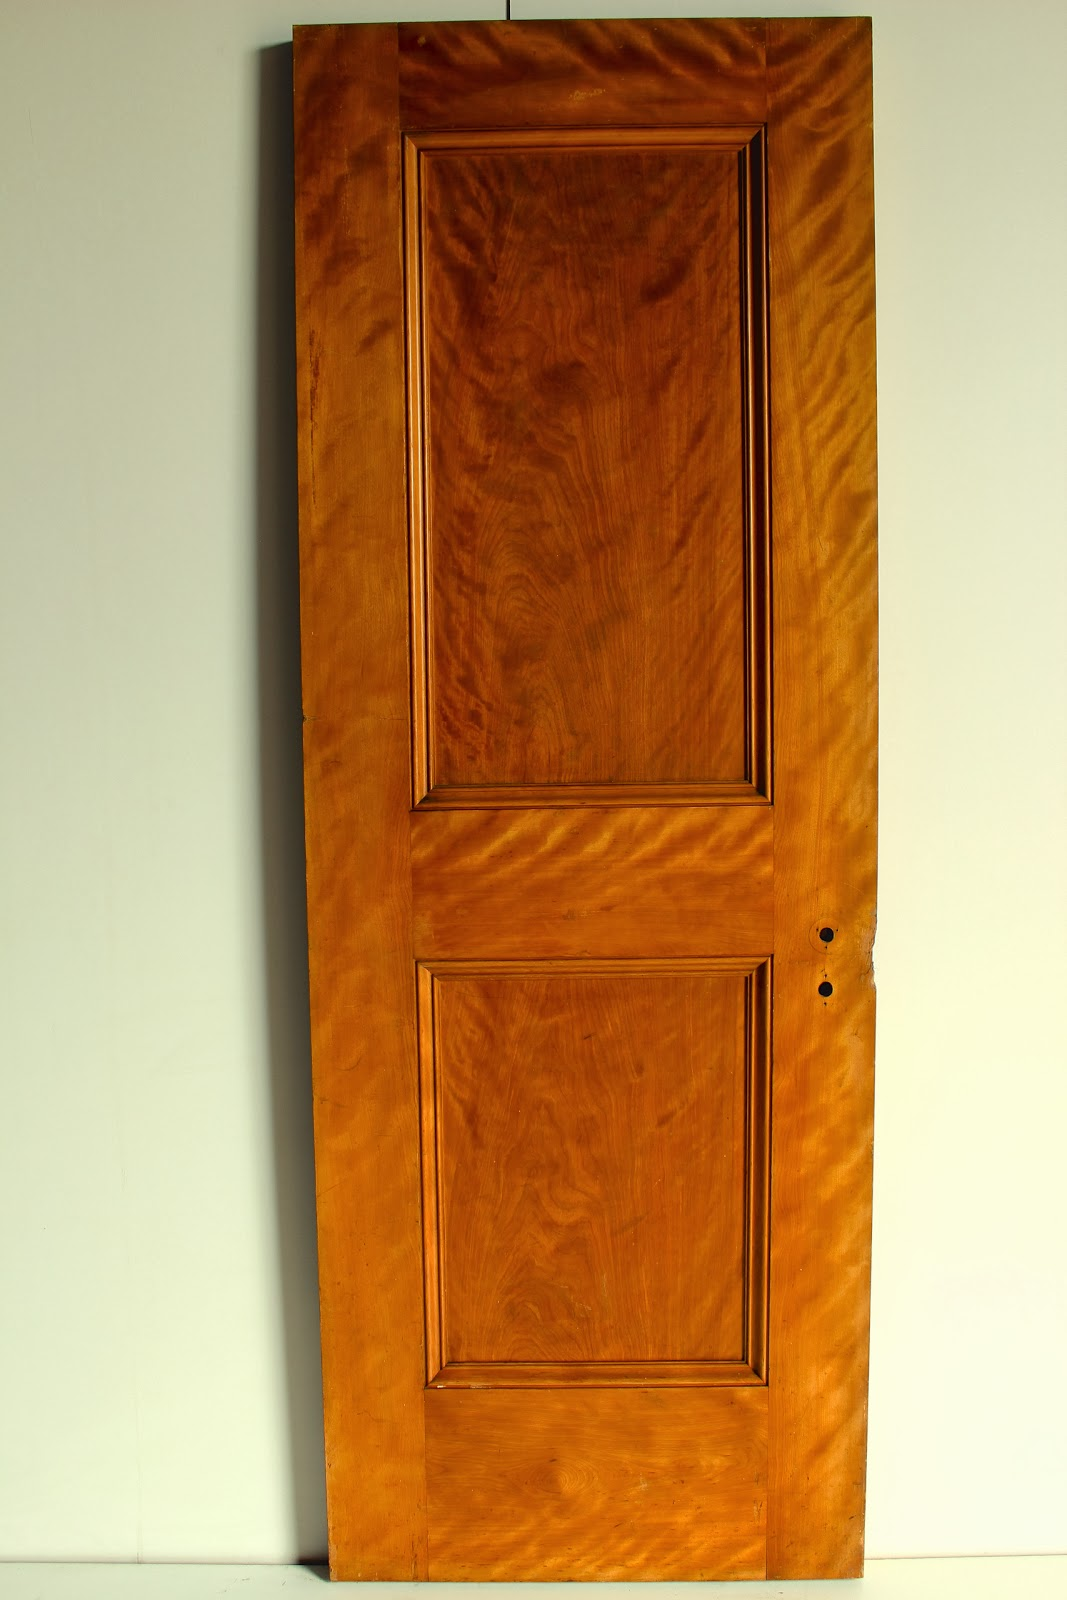 Curley Maple Paneled Doors Curley Maple Paneled Doors : panneled doors - pezcame.com